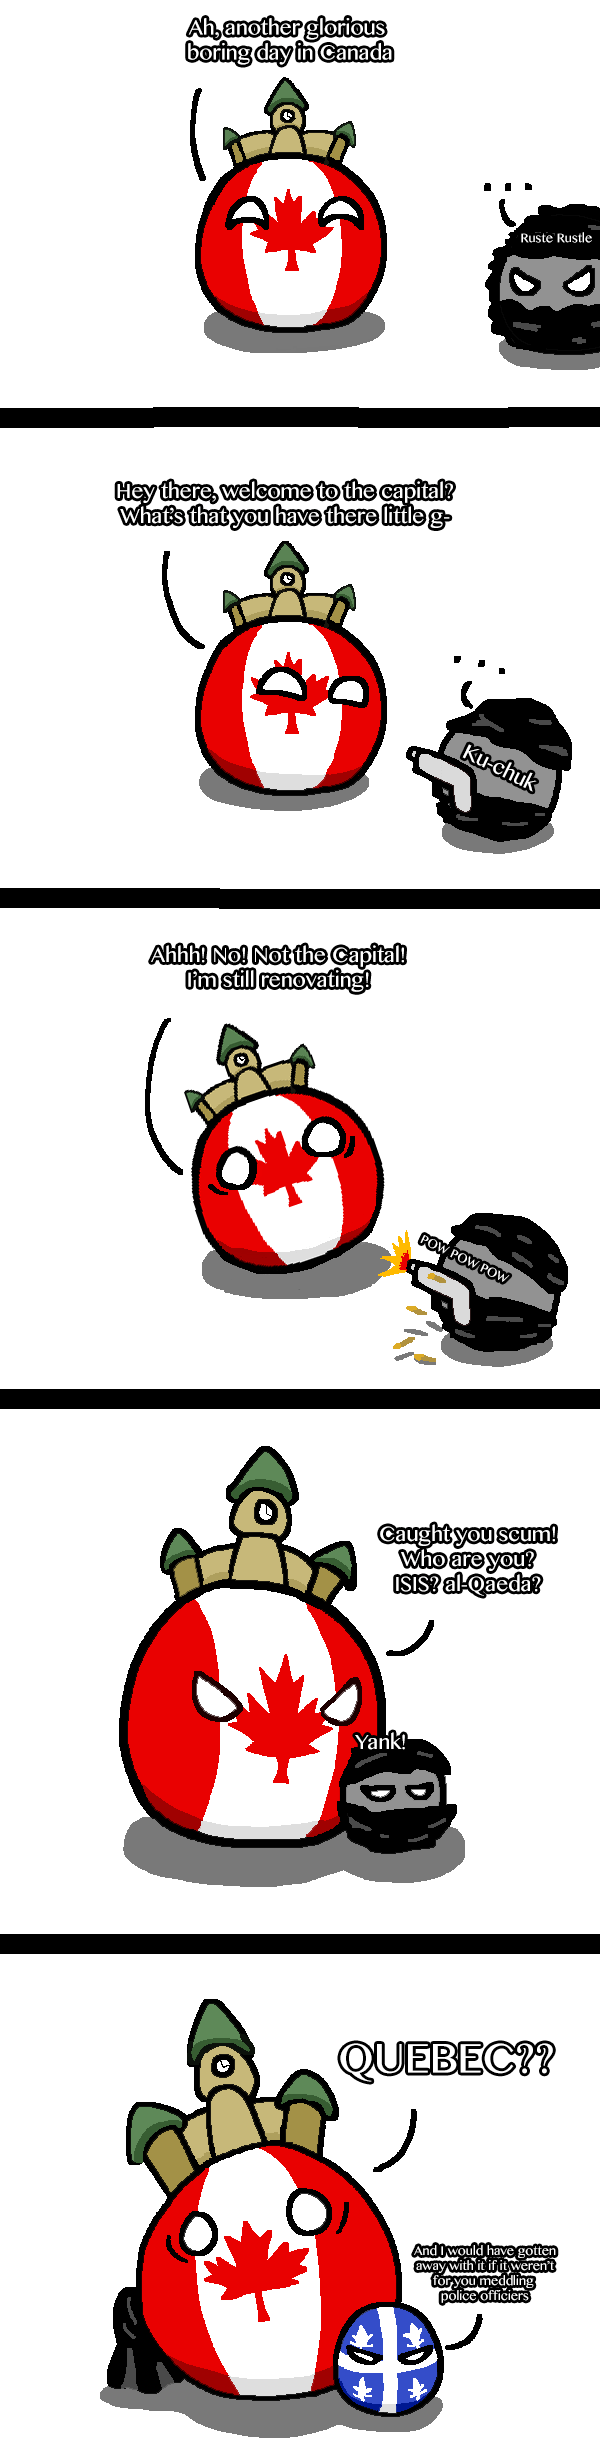 Countryballs Speedart 43 Canadian Provinces And Territories